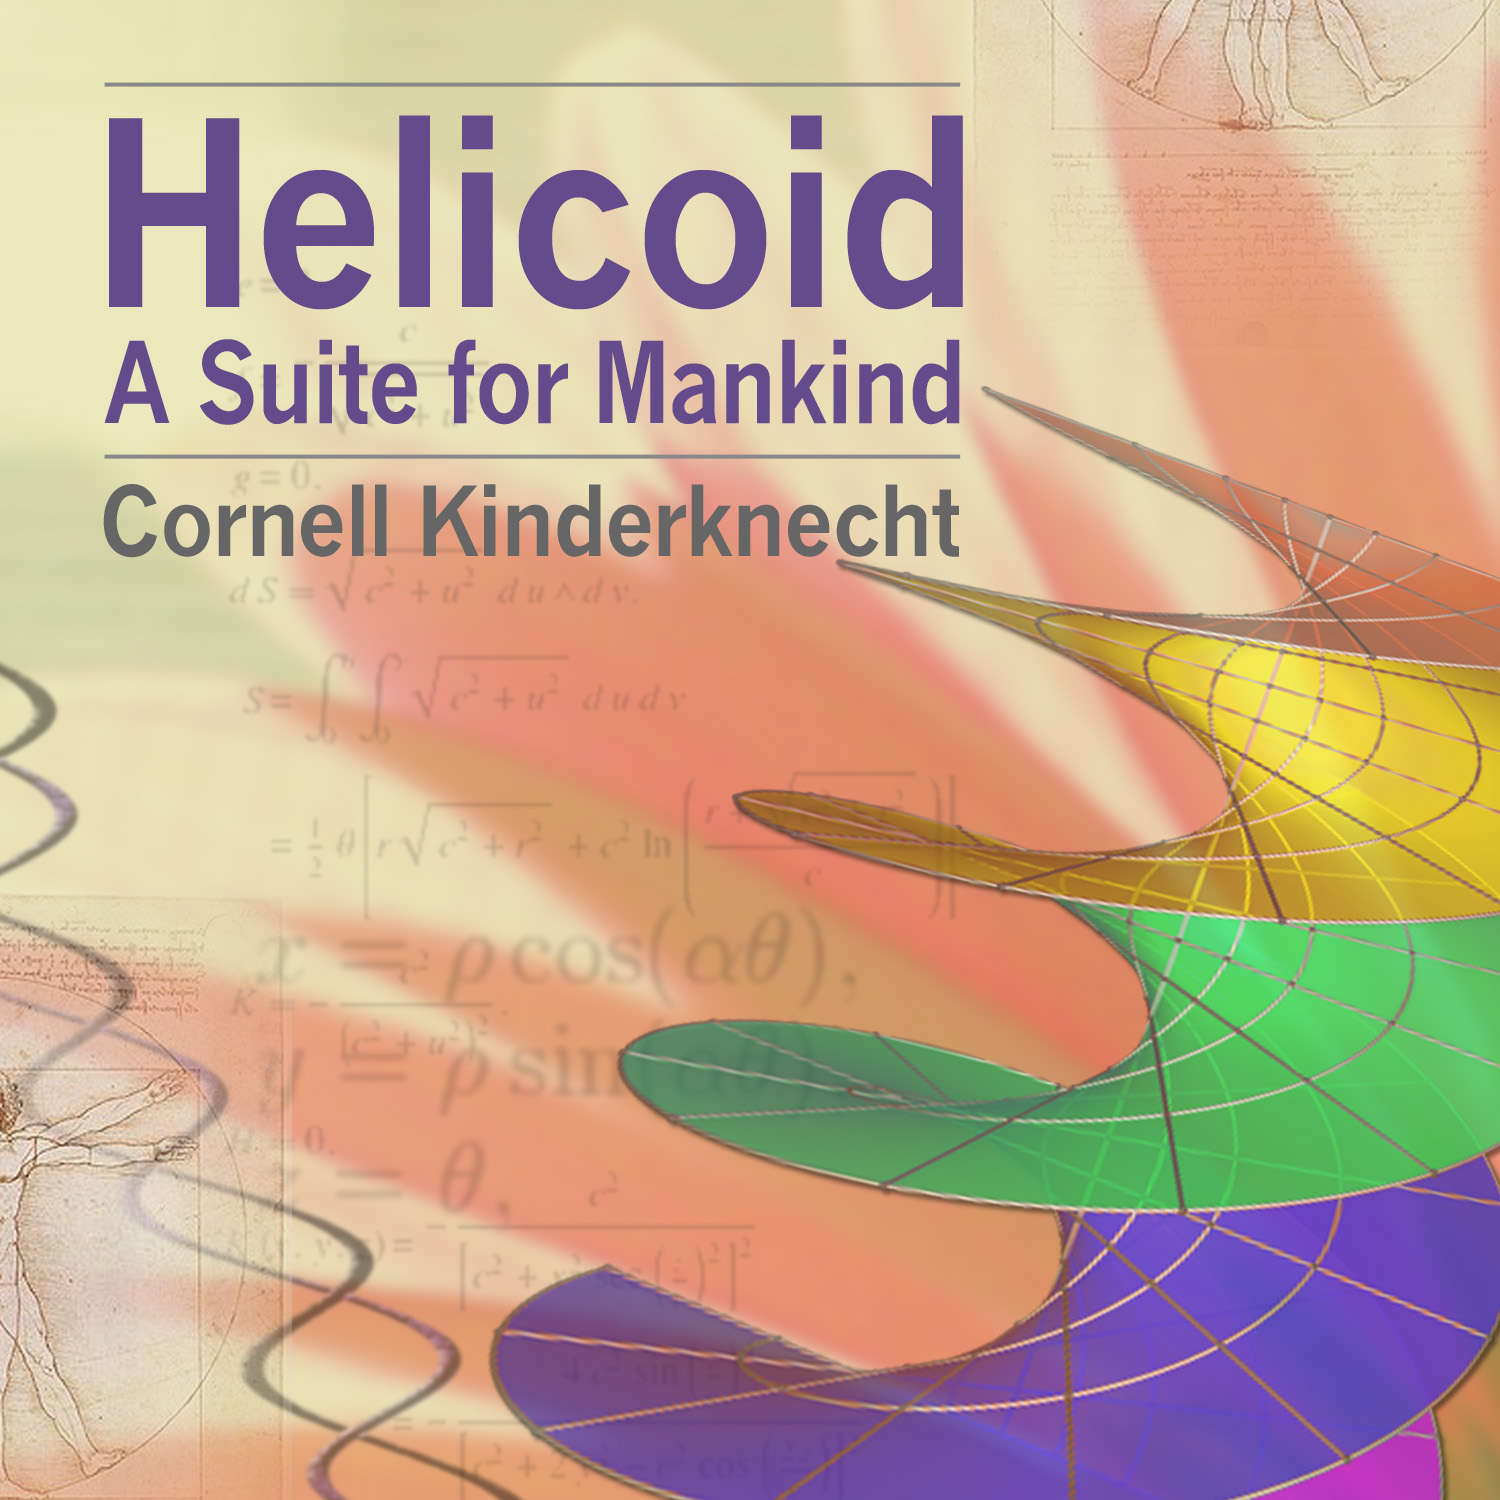 Helicoid, A Suite for Mankind digital download by Cornell Kinderknecht